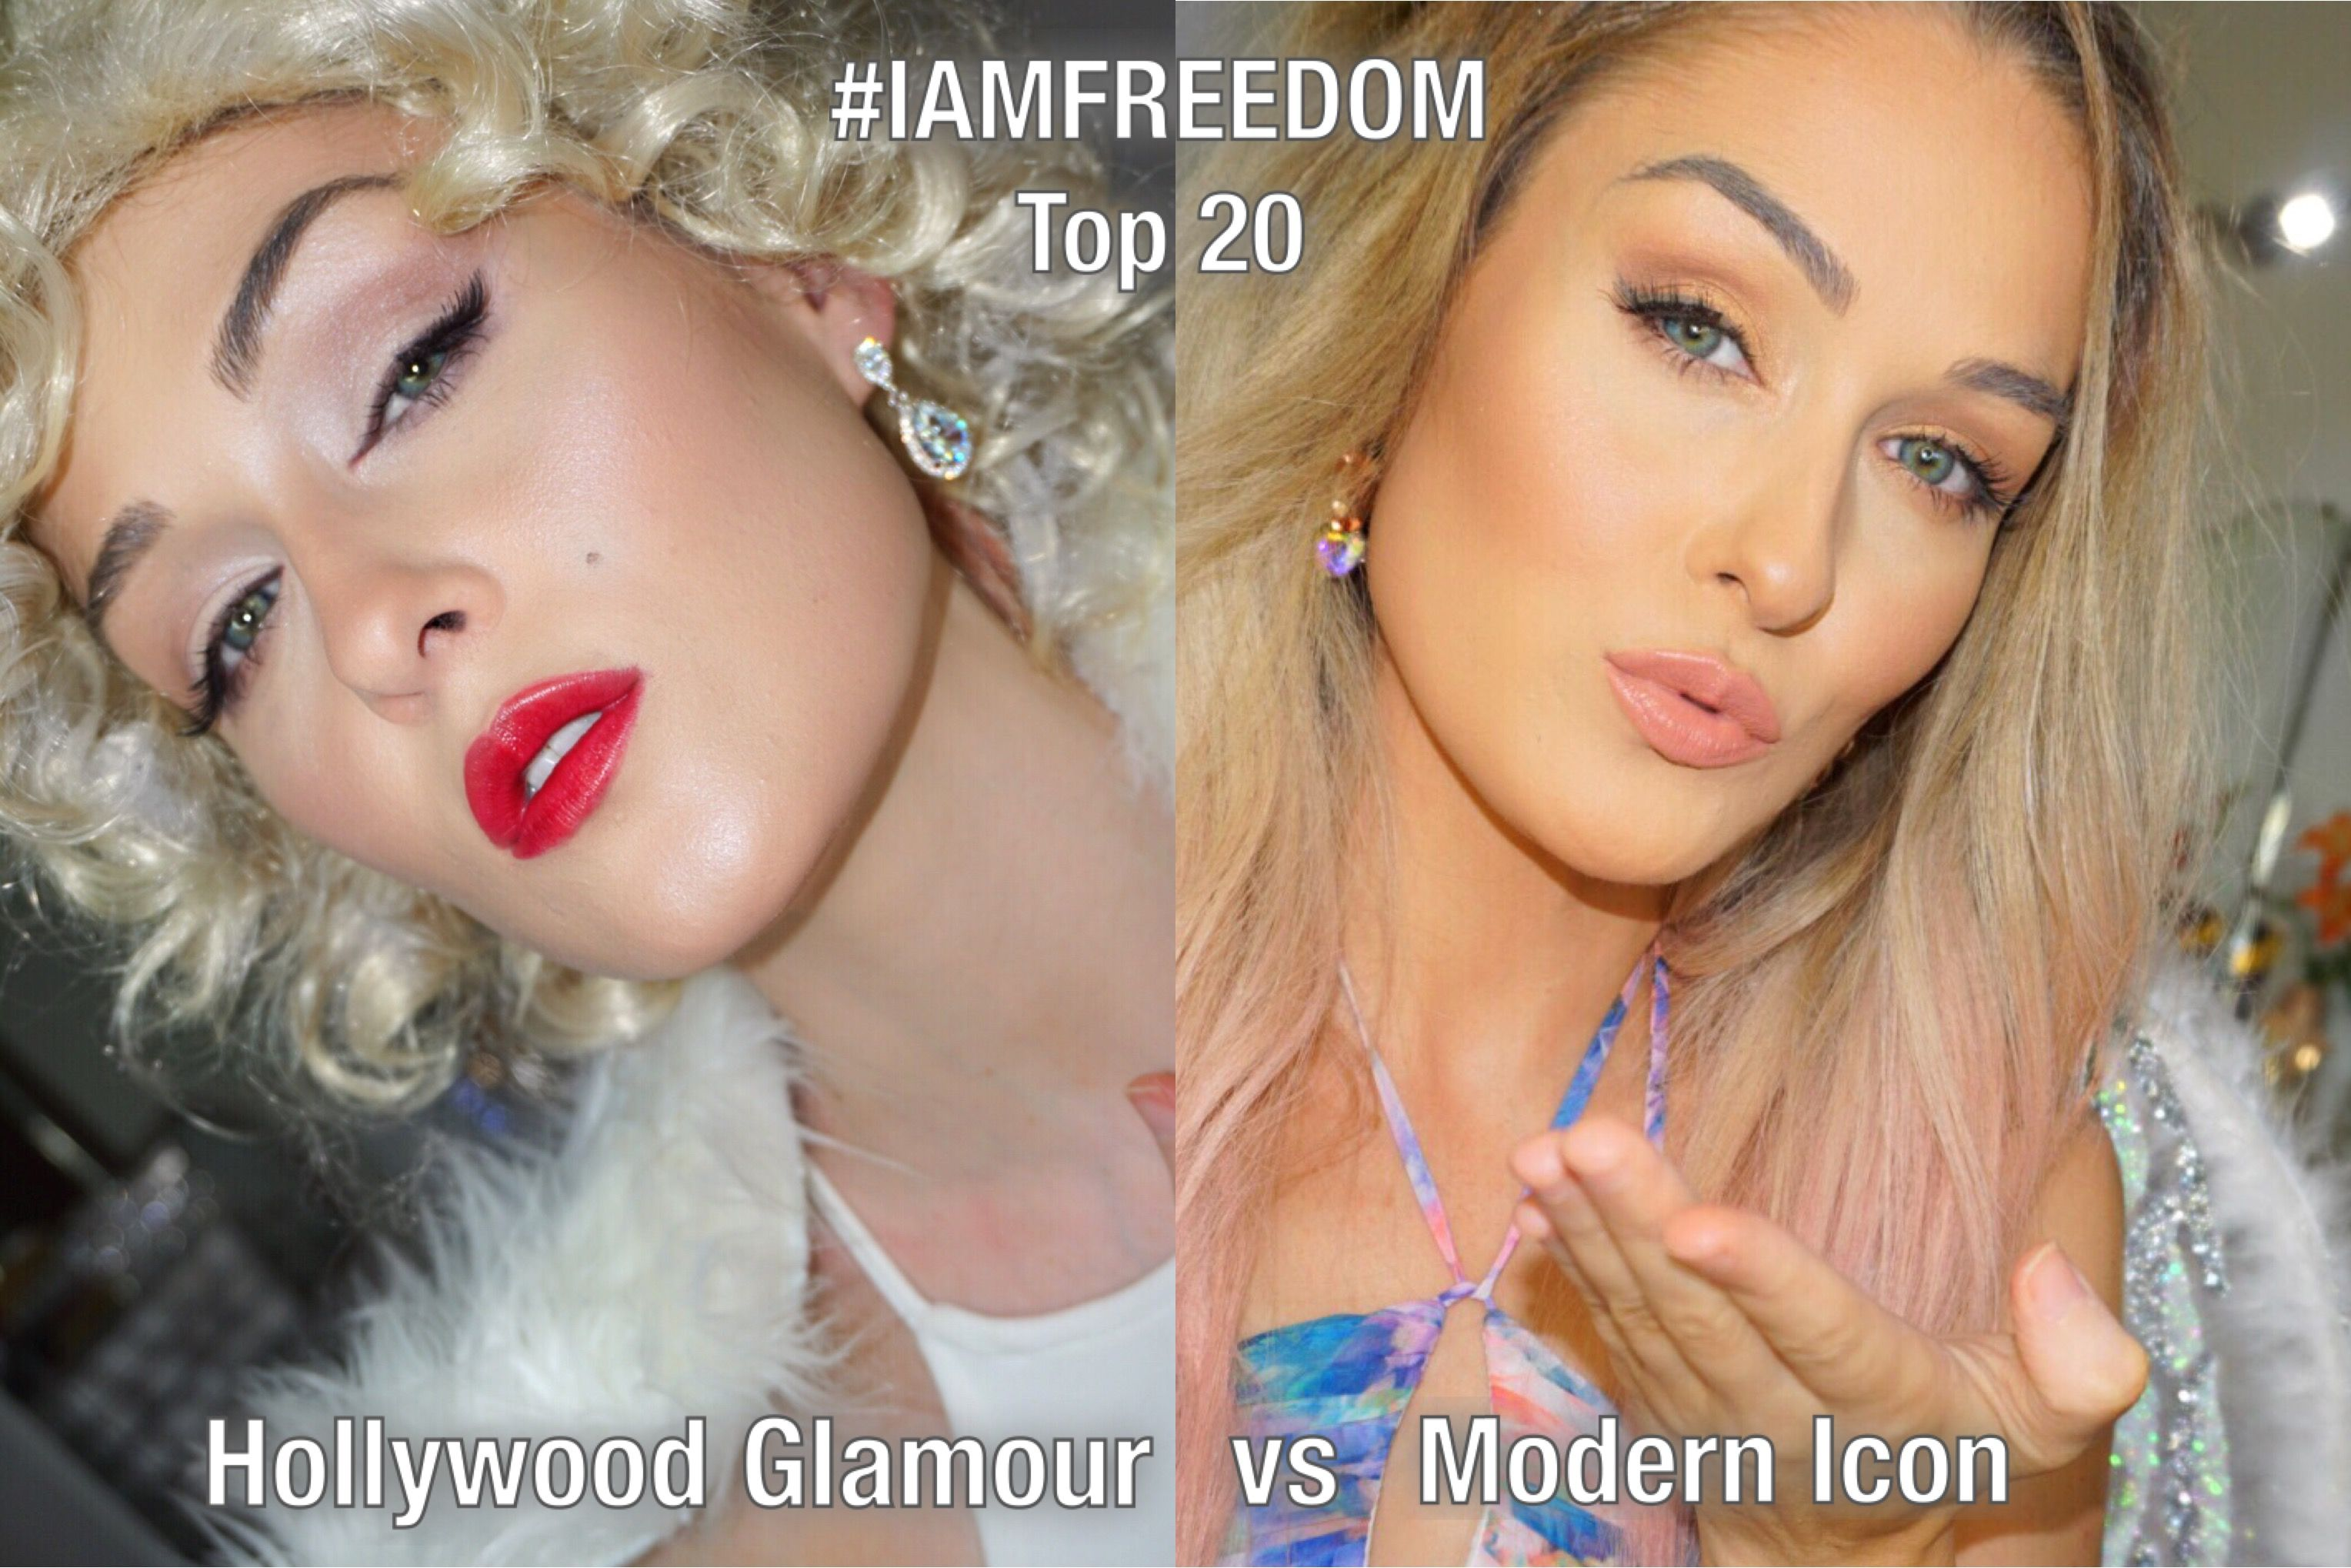 Hey beauties please check out my iamfreedom awards top 20